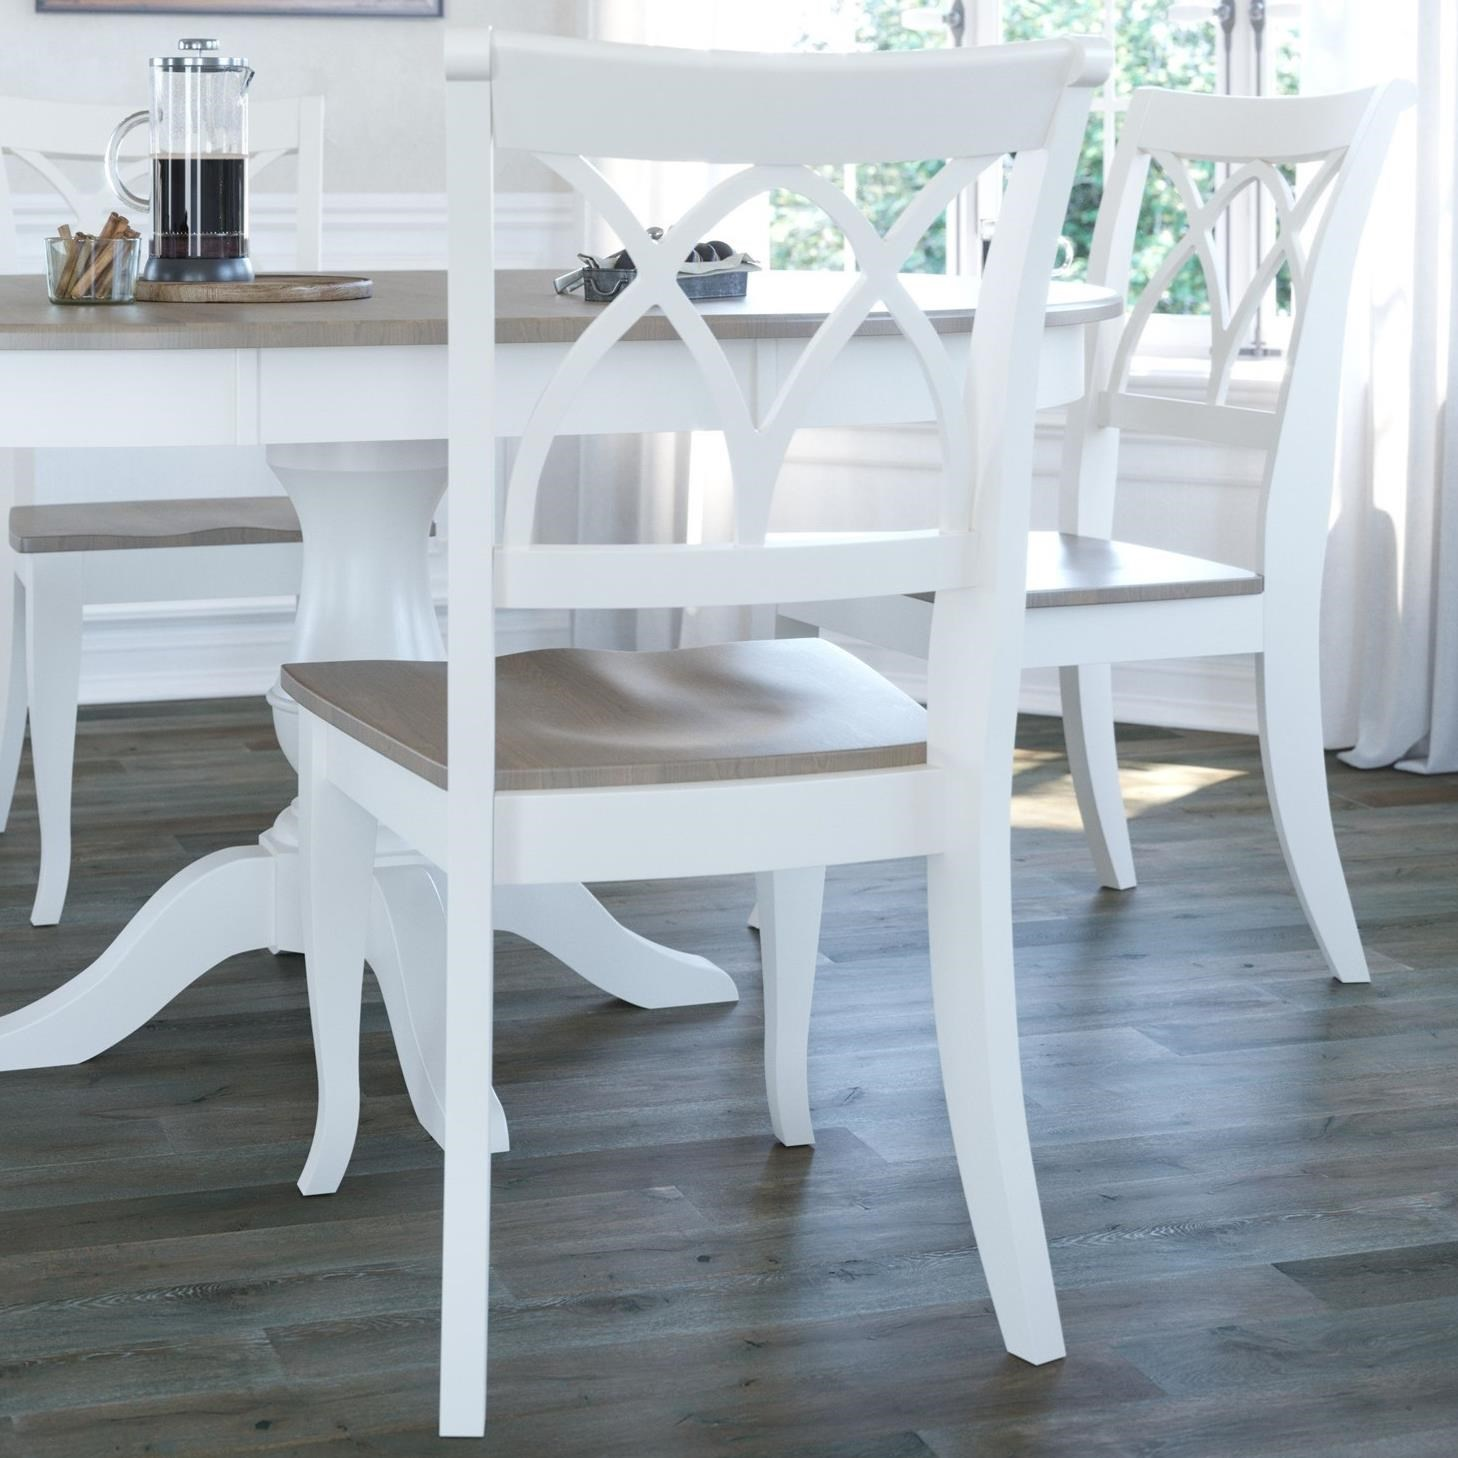 Gourmet - Custom Dining Customizable Dining Chair by Canadel at Dinette Depot